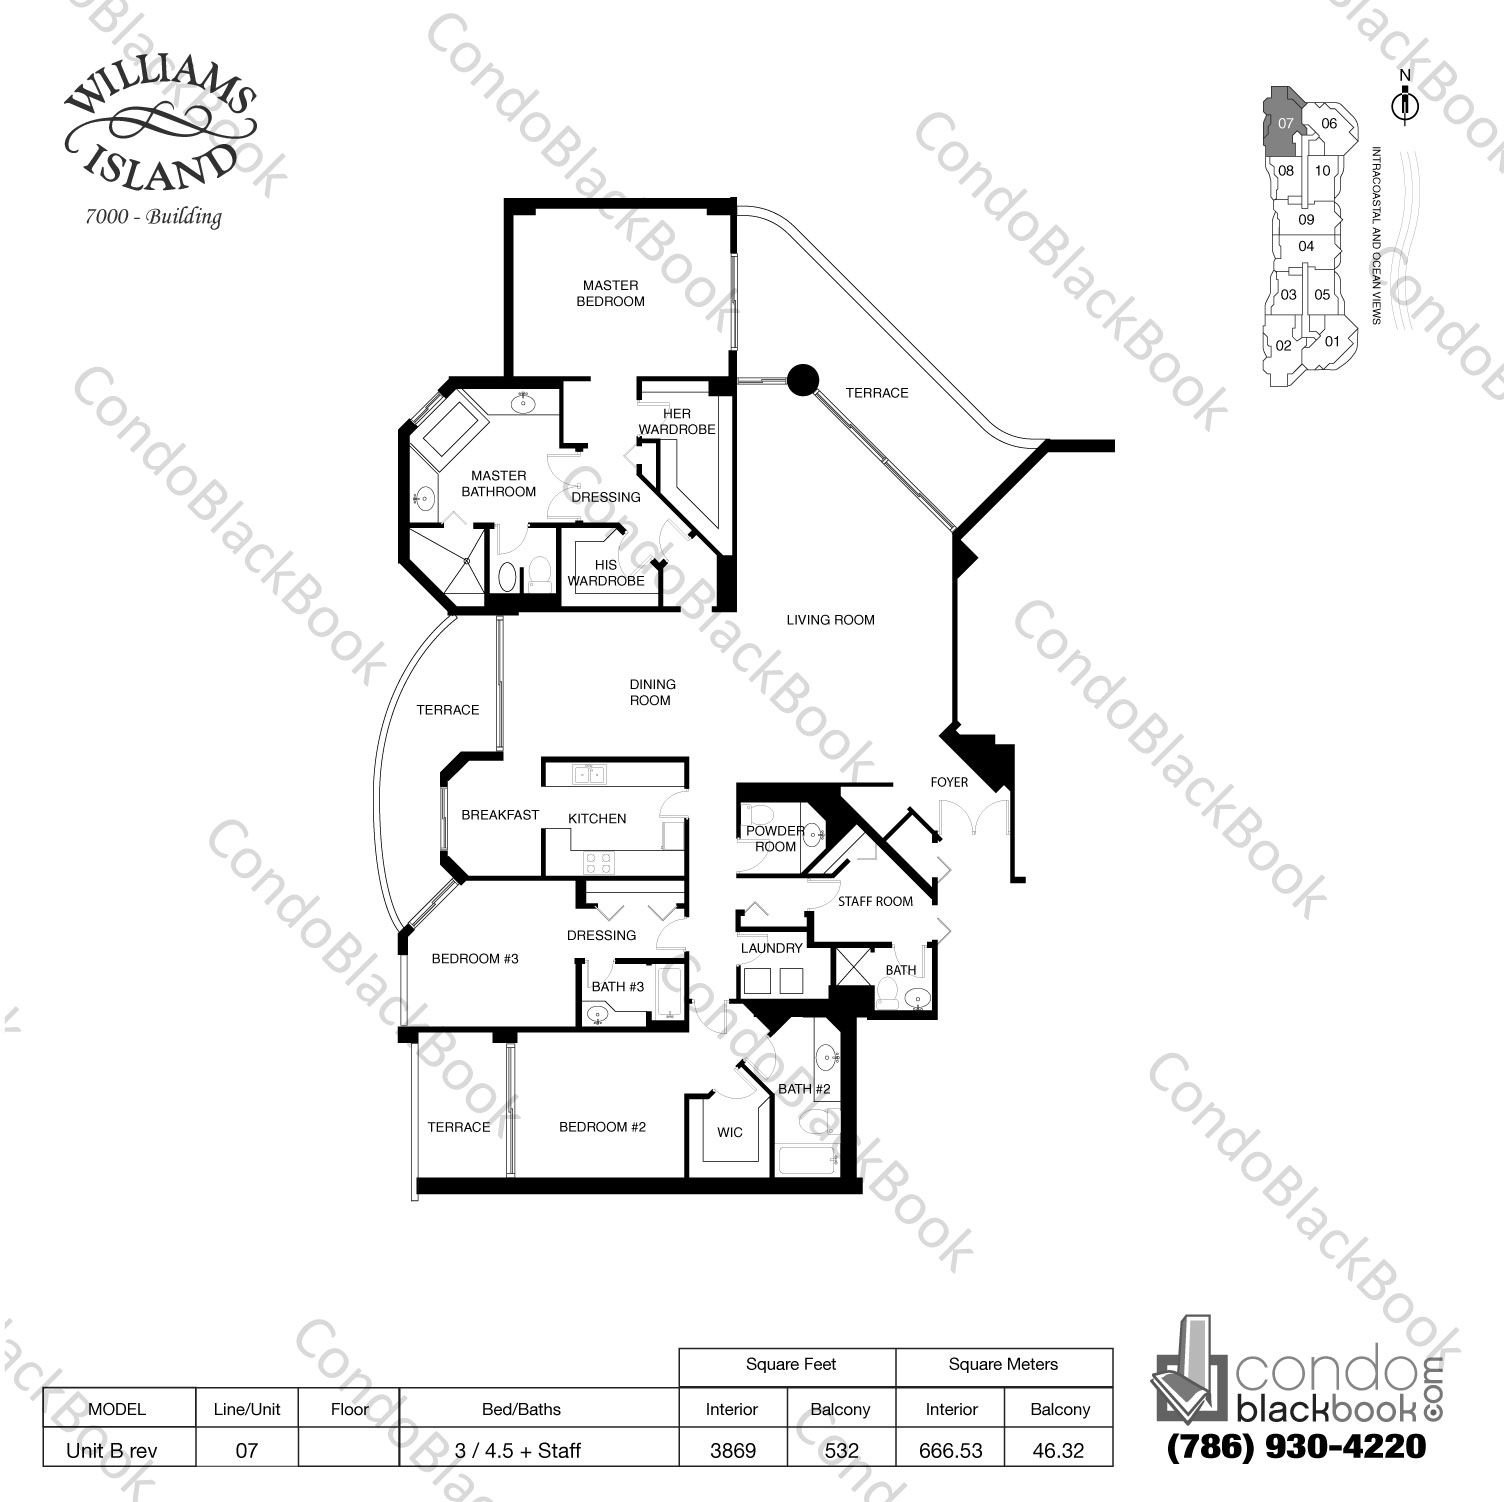 Floor plan for Williams Island 7000 Aventura, model Unit B rev, line 07, 3 / 4.5 bedrooms, 3869 sq ft